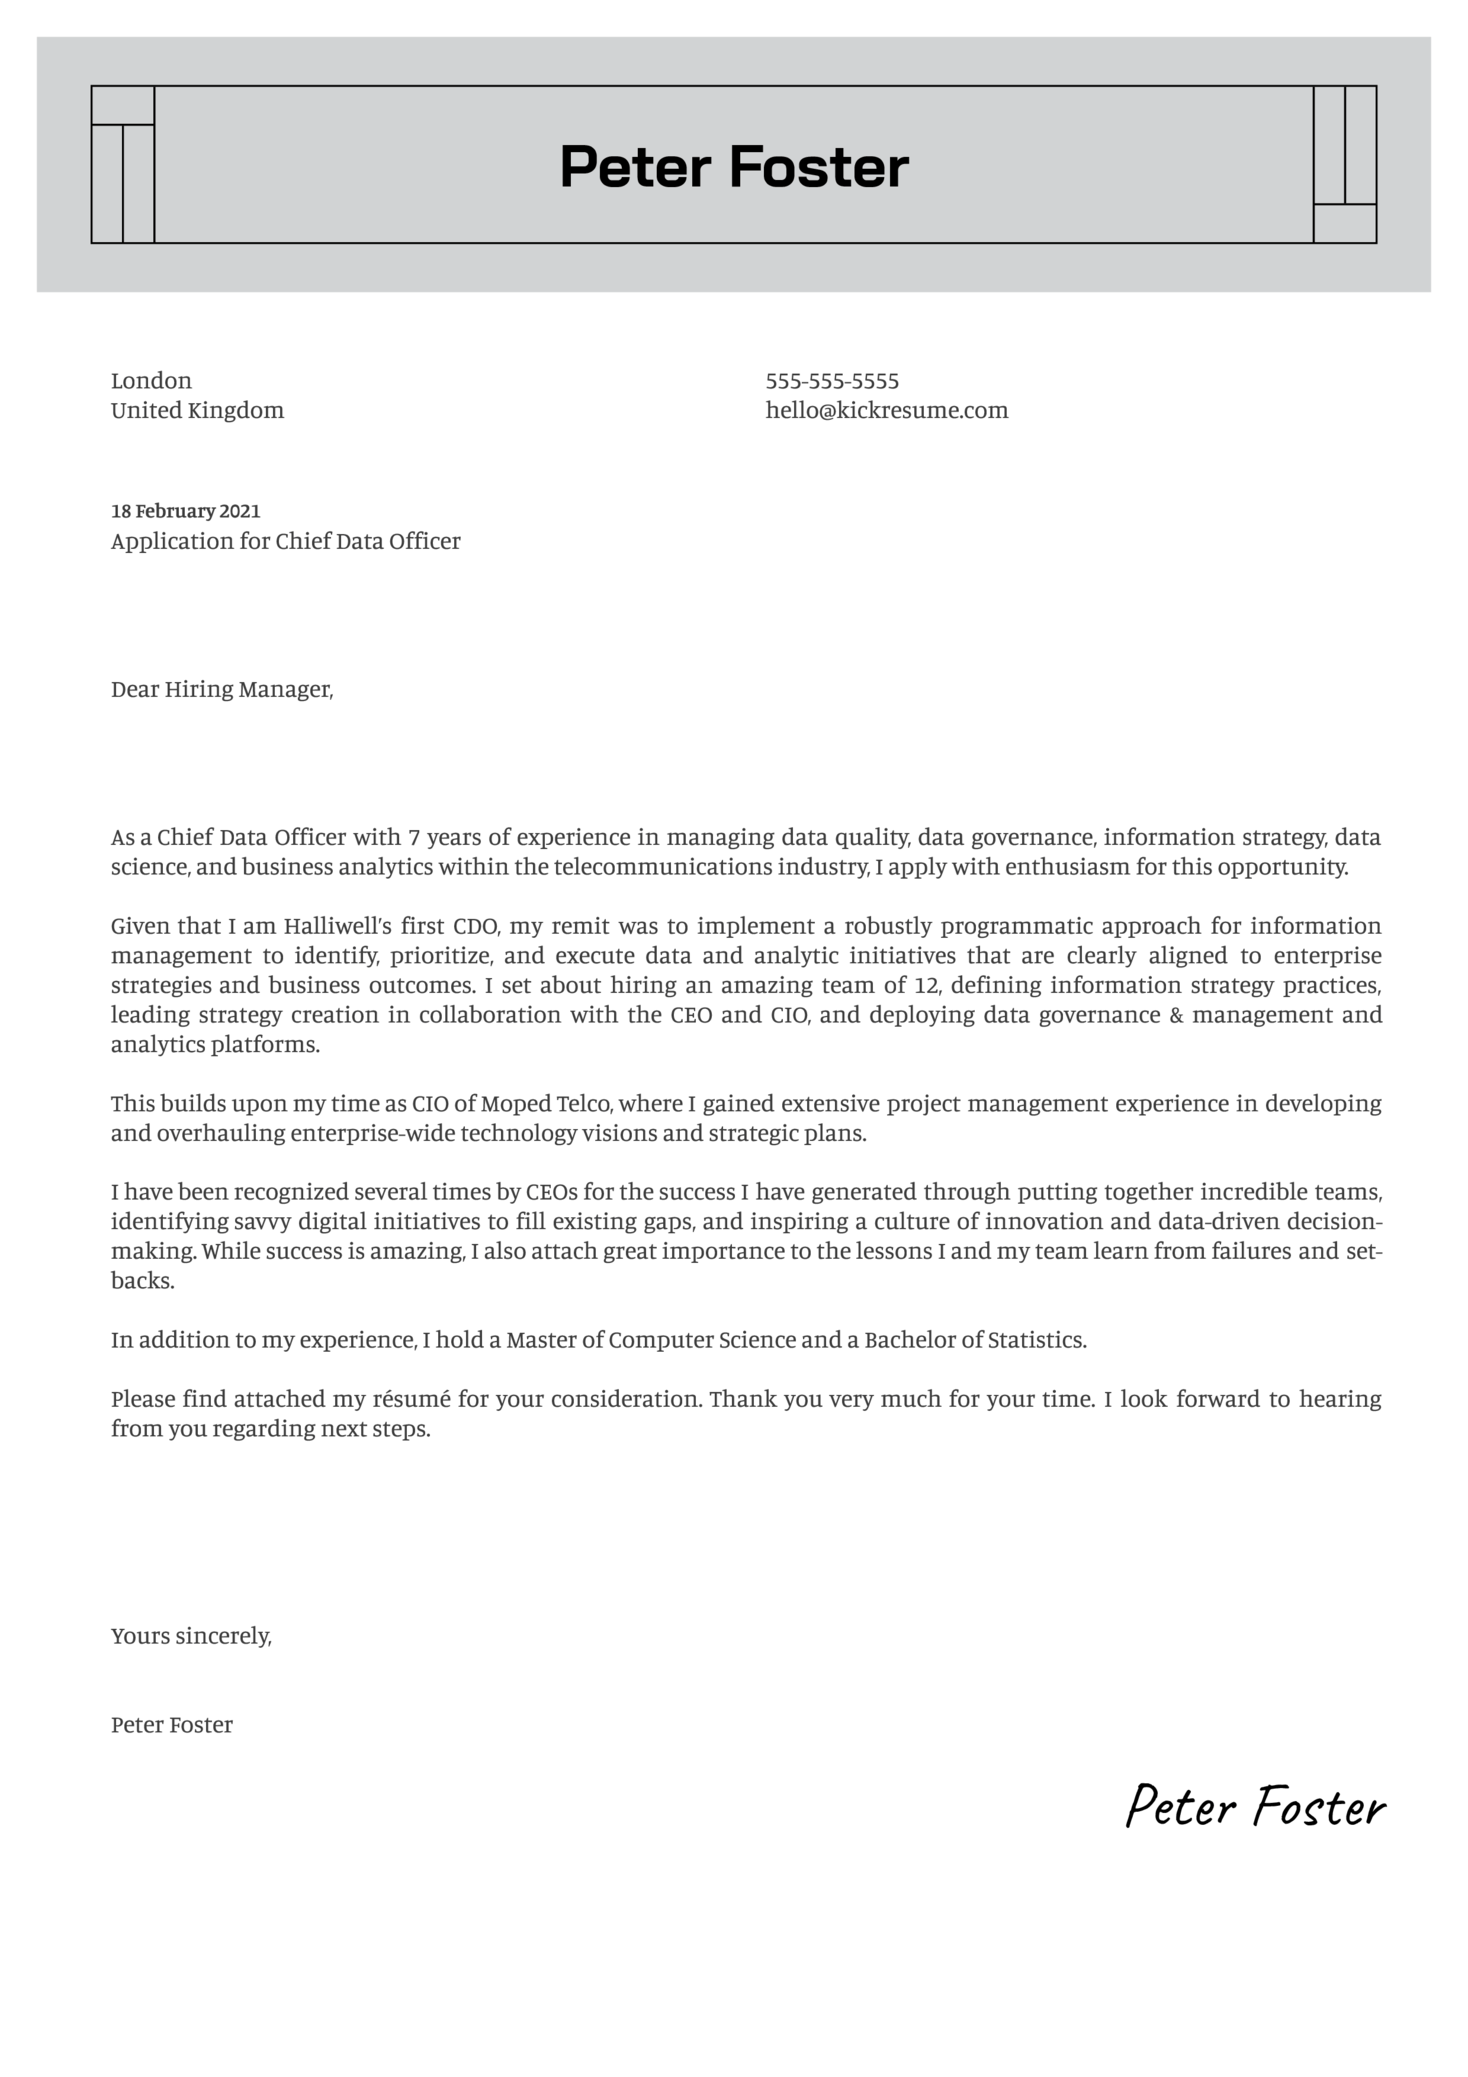 CDO Cover Letter Example